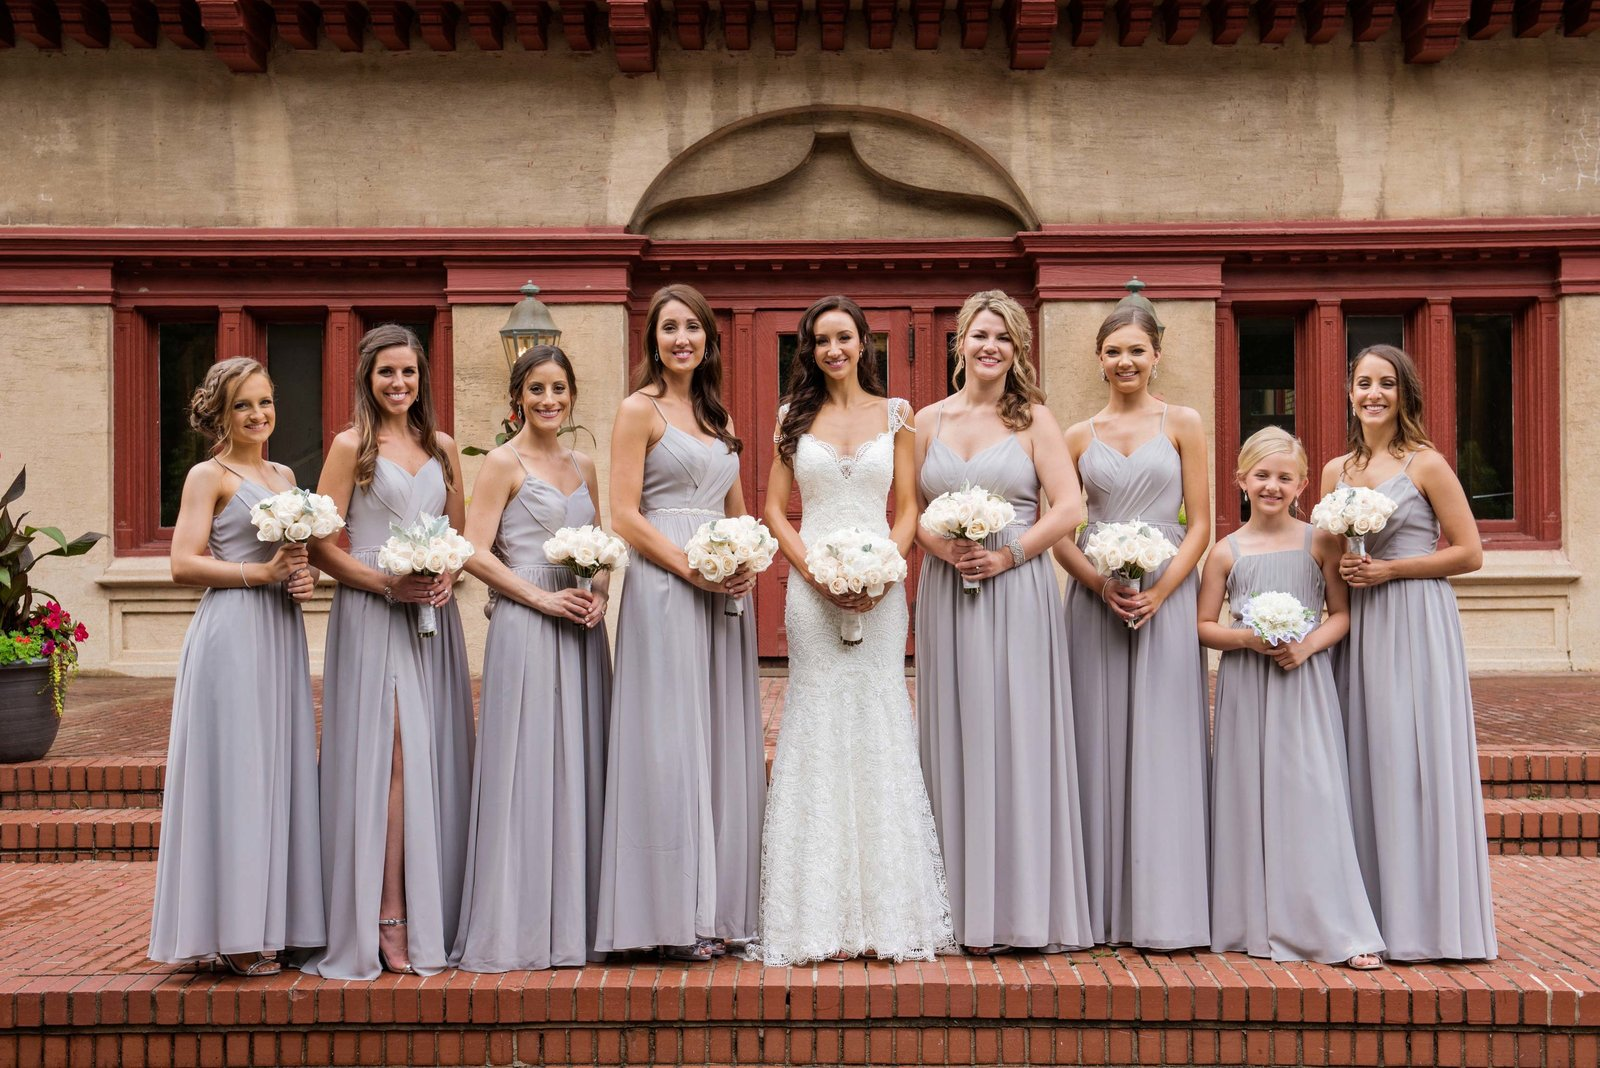 Coindre Hall wedding bridal party photos